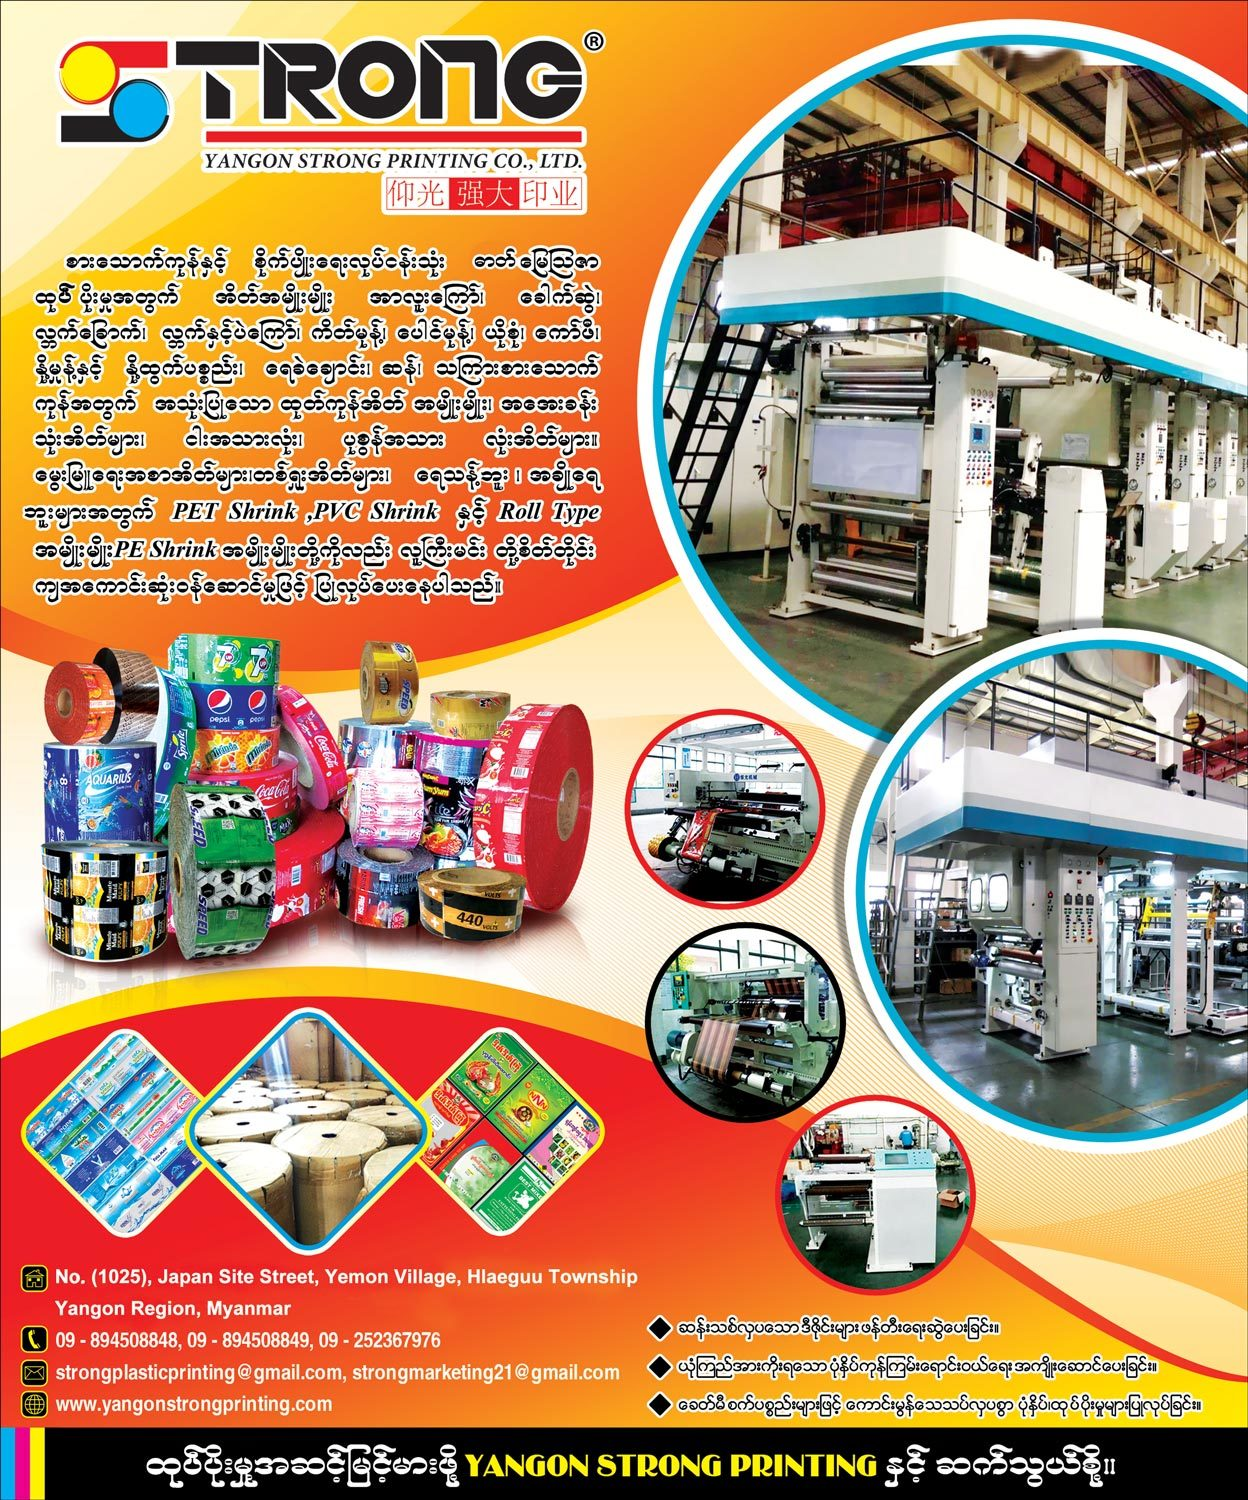 Yangon-Strong-Printing-Co-Ltd_Plastic-Materials-&-Products_(A)_4195.jpg